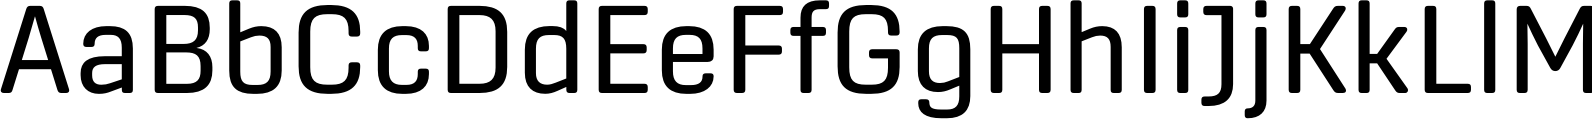 Center Regular Font